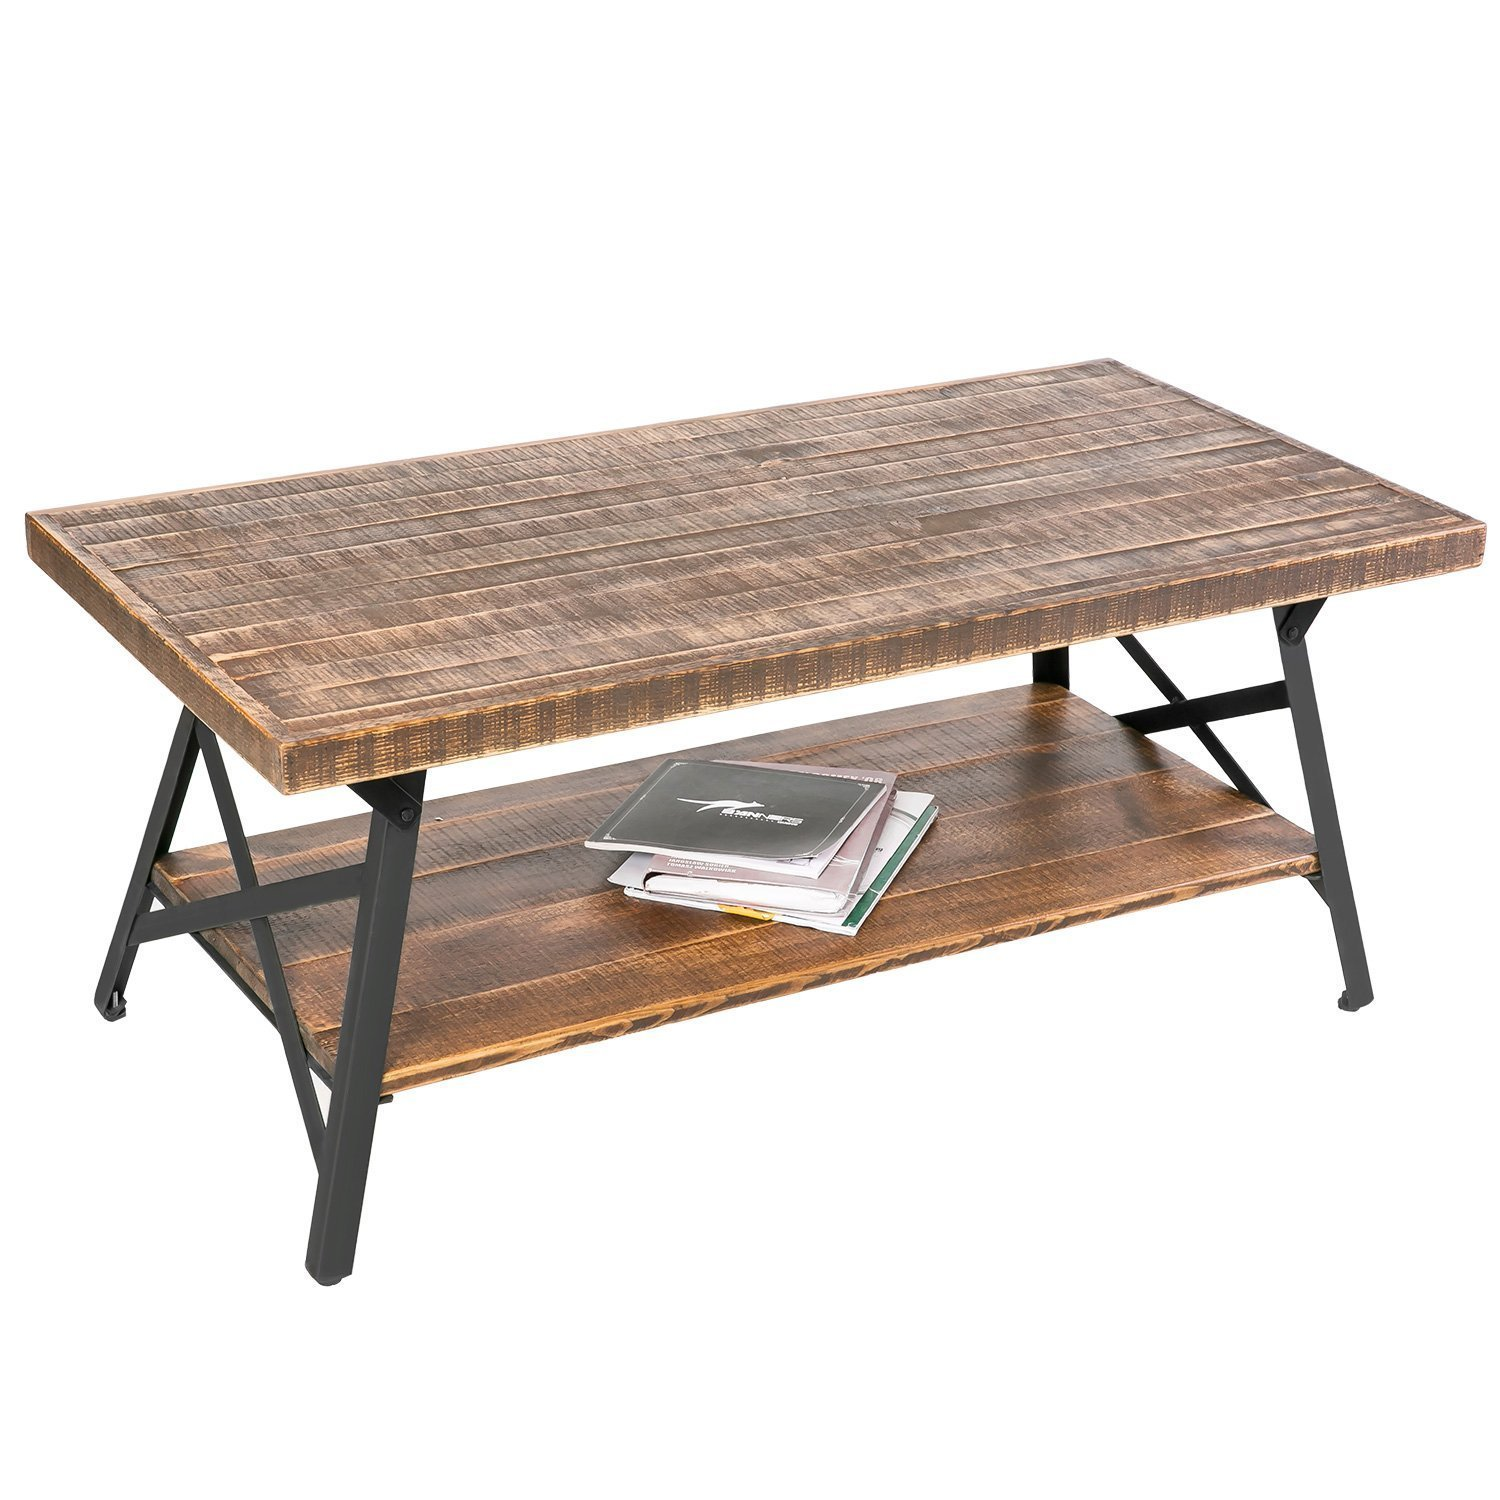 26 Interesting Living Room Décor Ideas Definitive Guide: HarperBright Designs 43 Wood Coffee Table